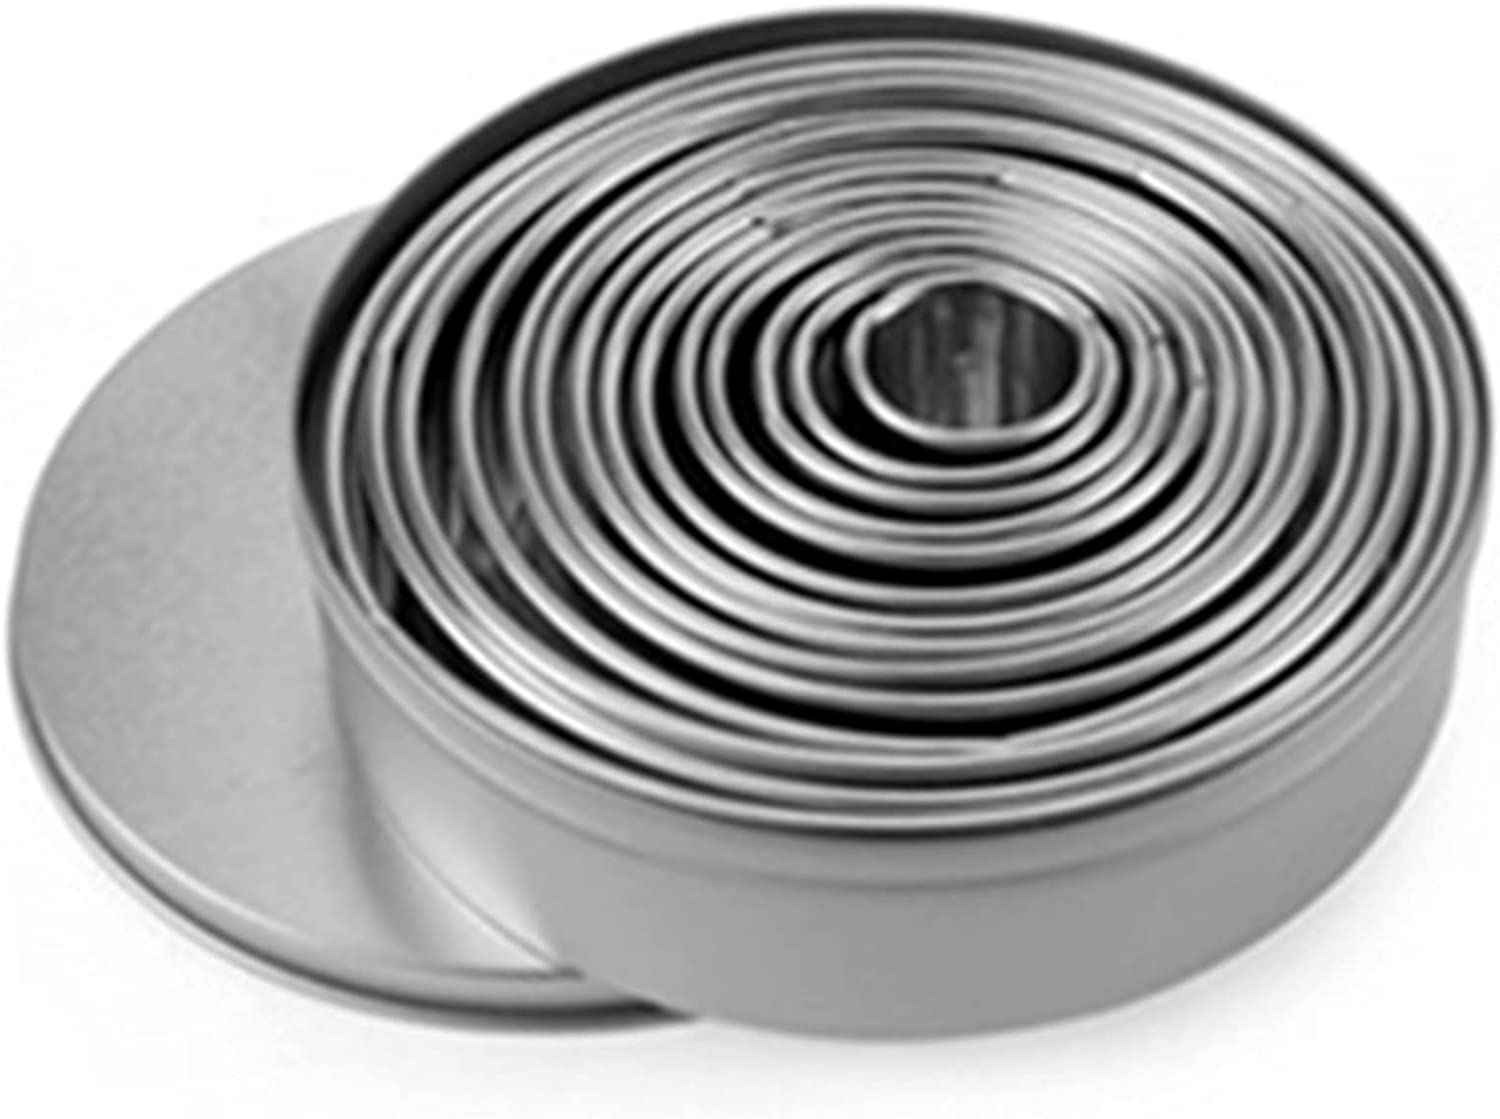 xingkong Cookie Biscuit Cutter Attention Over item handling ☆ brand Set Circle Stainless Steel Doughn